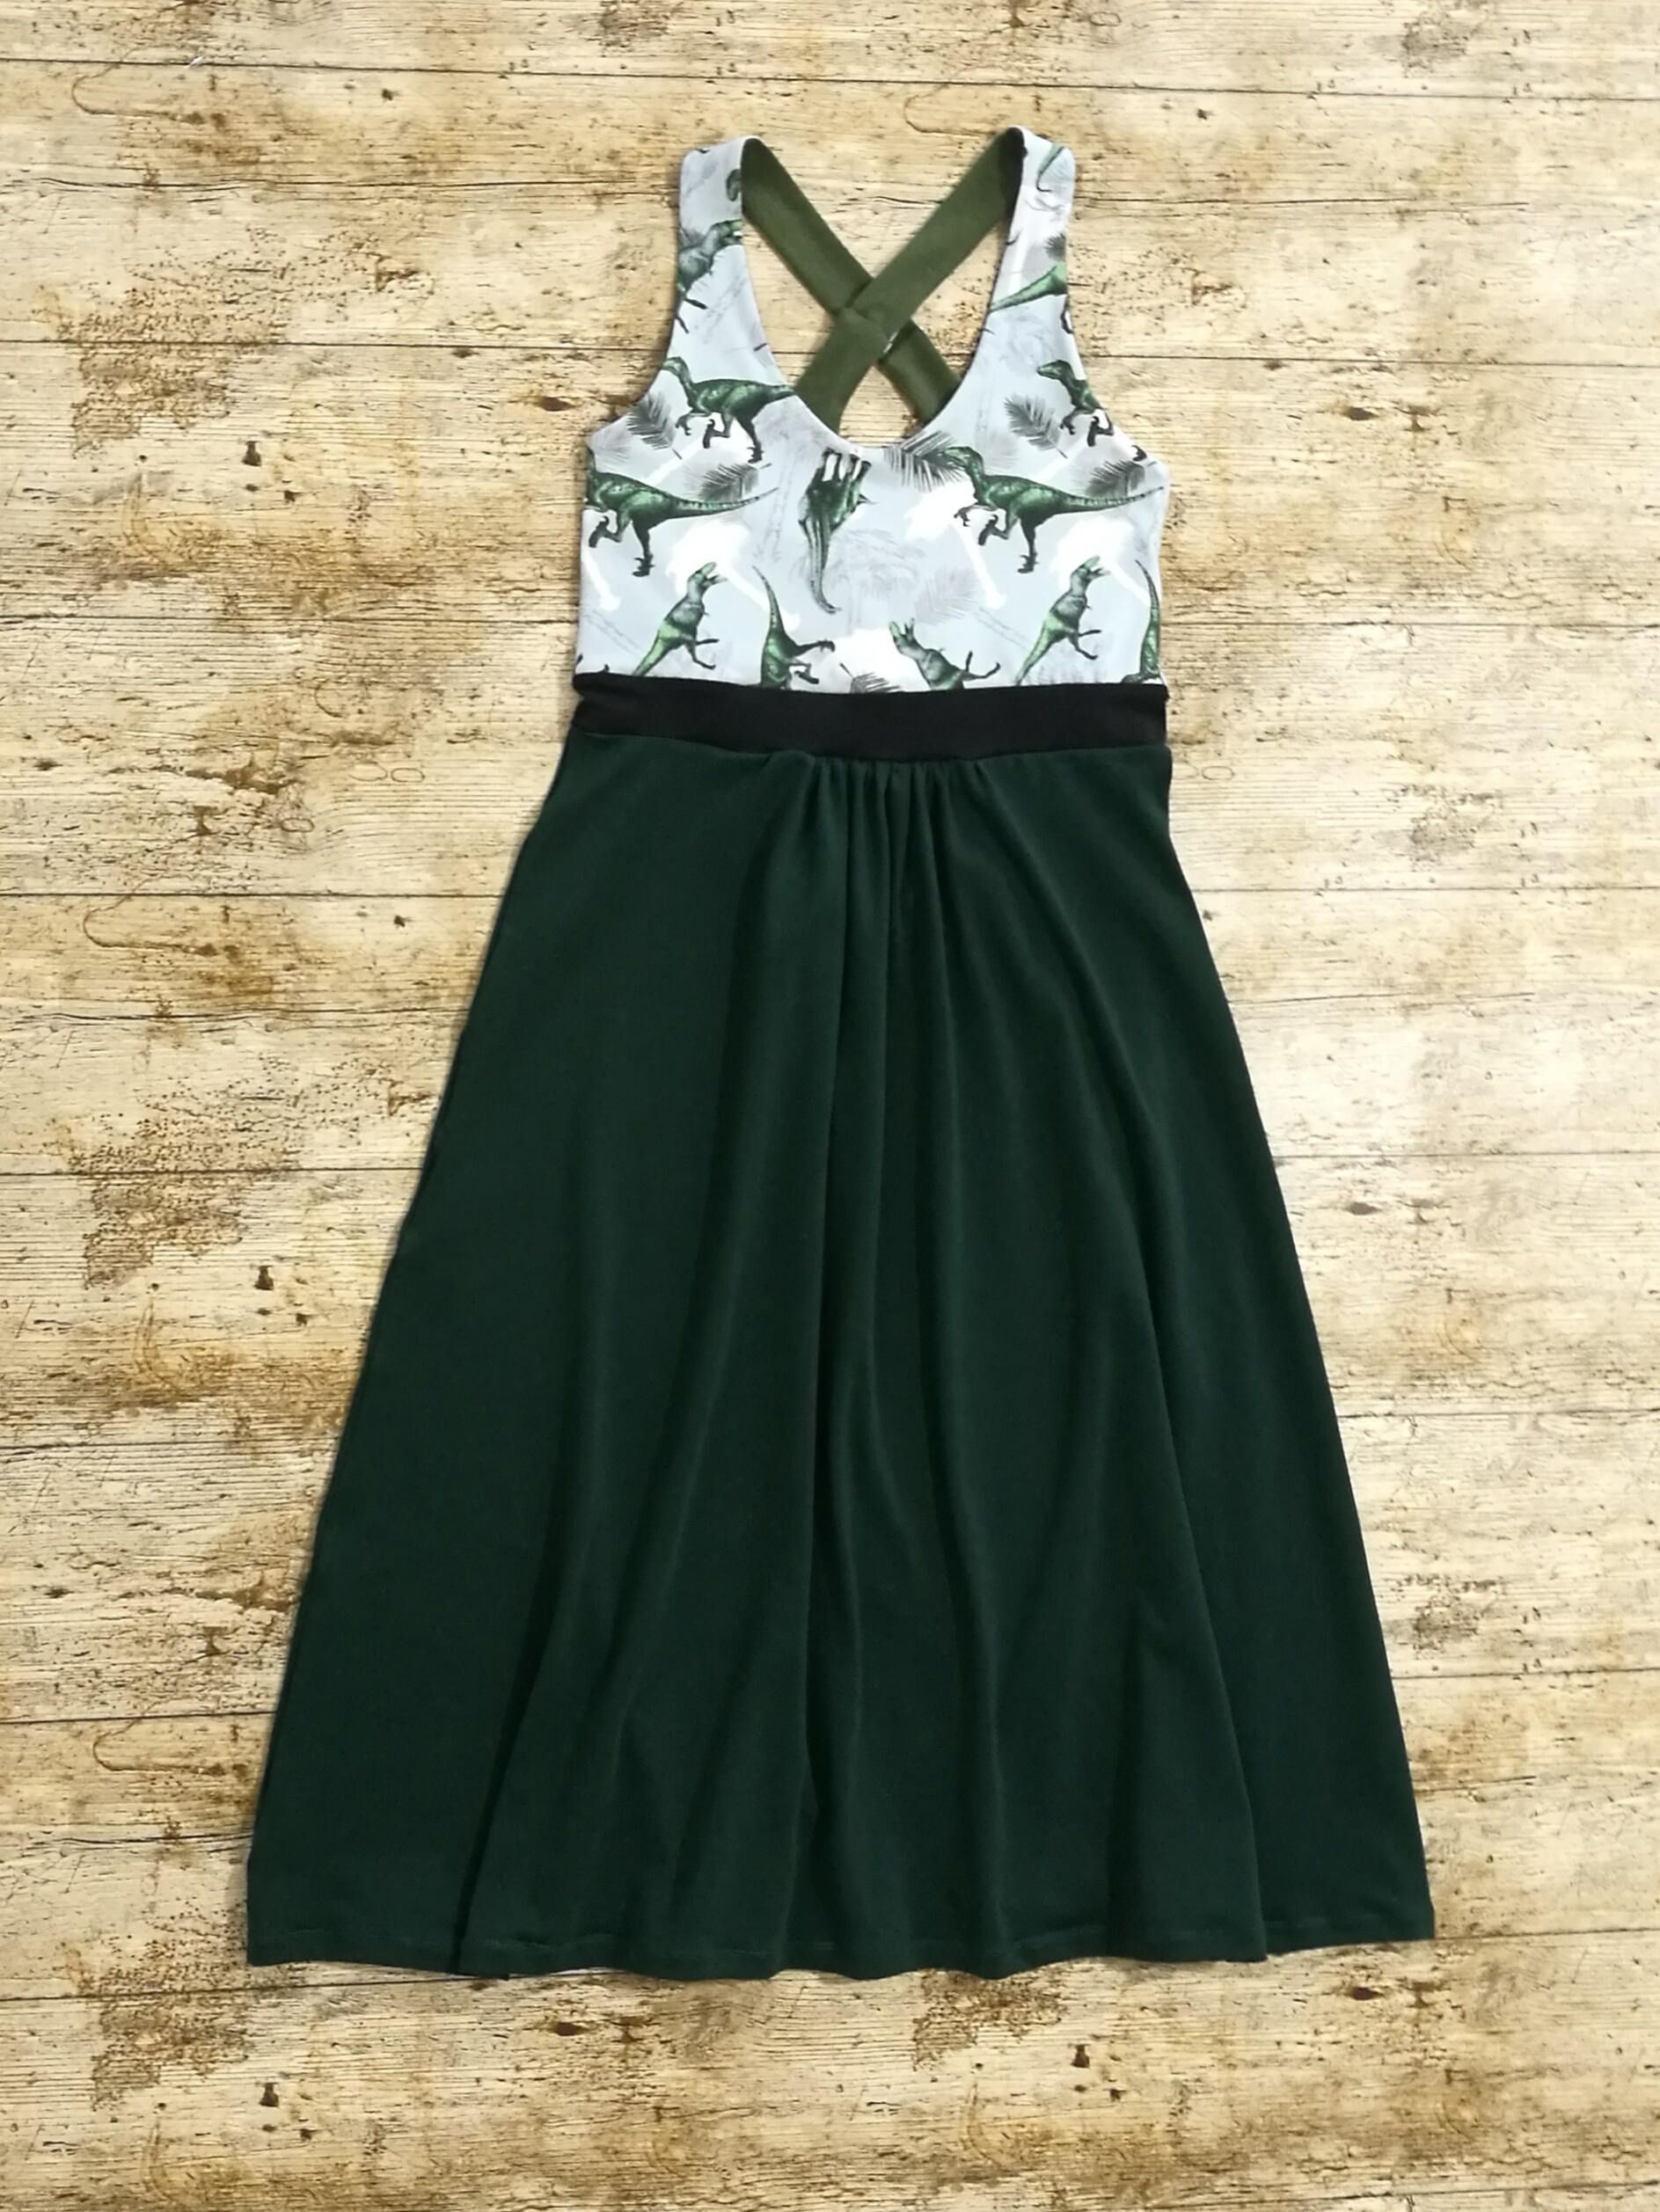 b5016989616e0 Dress with built in bra support, 'The Crush' dress with hidden support,  women's dinosaur dress, fun dress for women, dino print brazi dress by  LovedGarms on ...